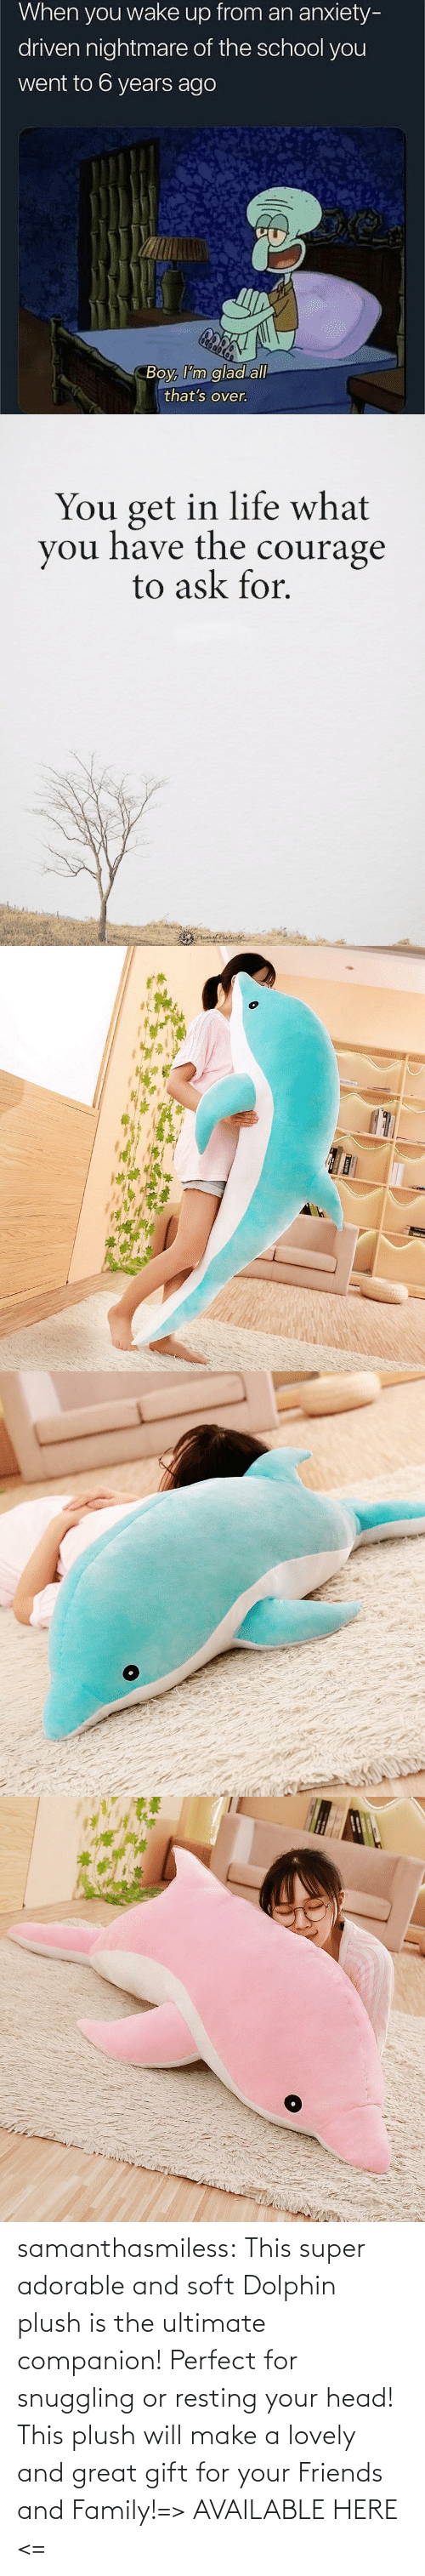 head: samanthasmiless:  This super adorable and soft Dolphin plush is the ultimate companion! Perfect for snuggling or resting your head! This plush will make a lovely and great gift for your Friends and Family!=> AVAILABLE HERE <=